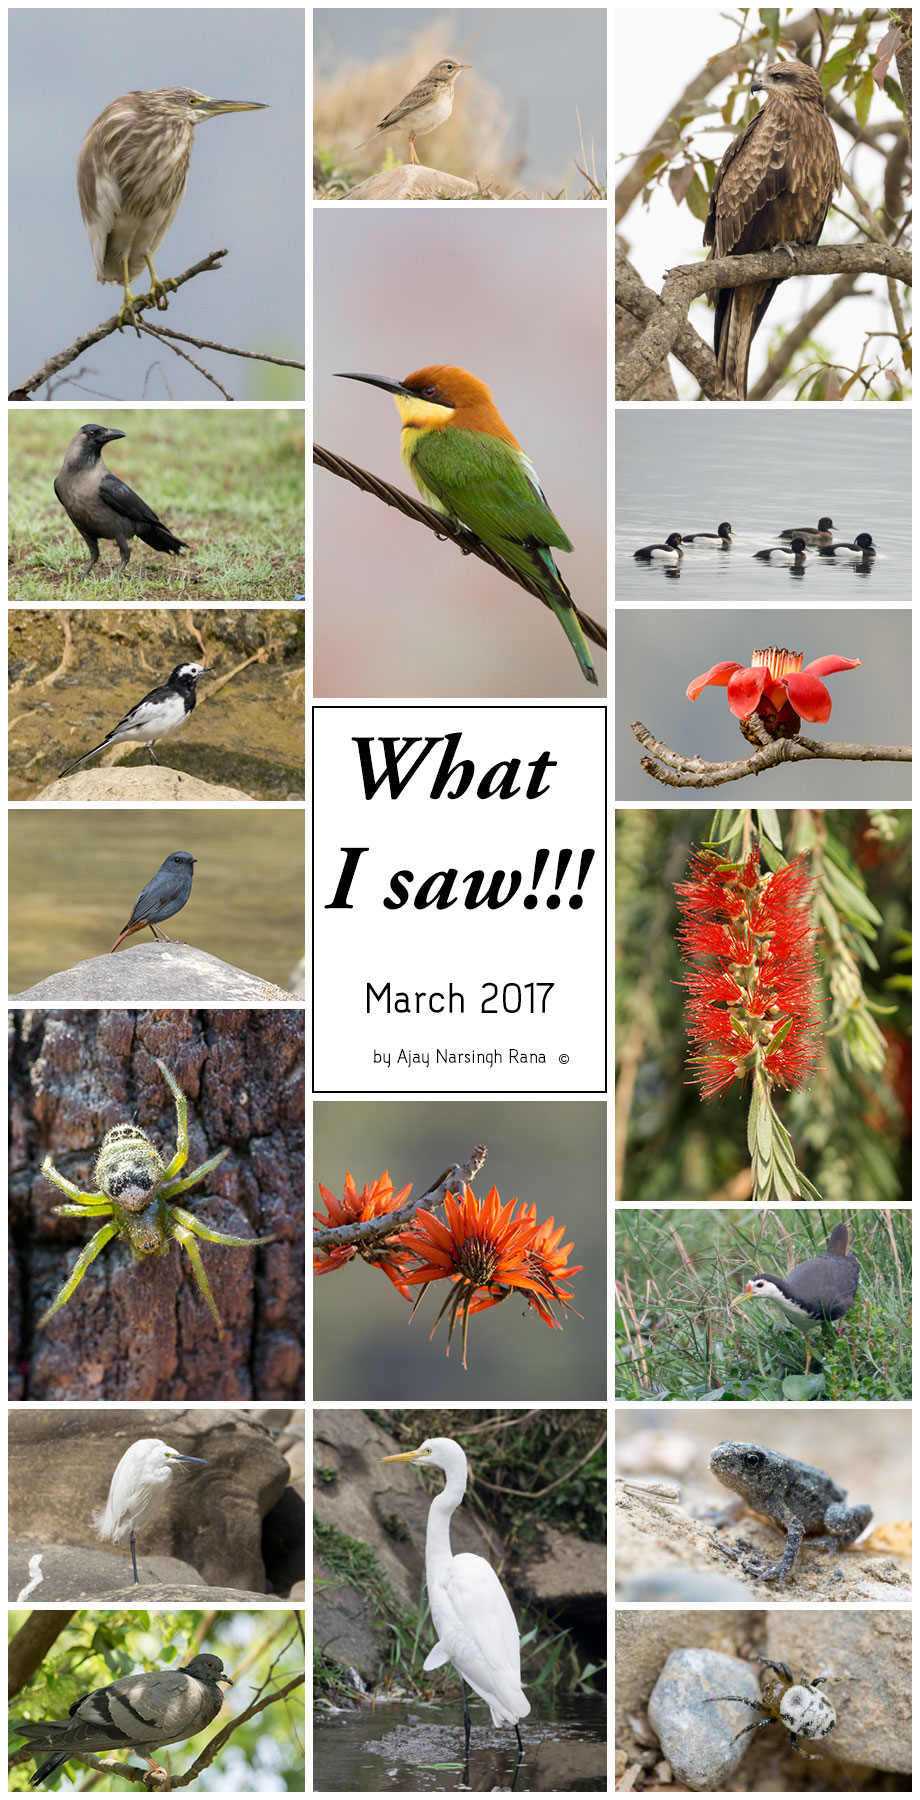 What i saw March 2017